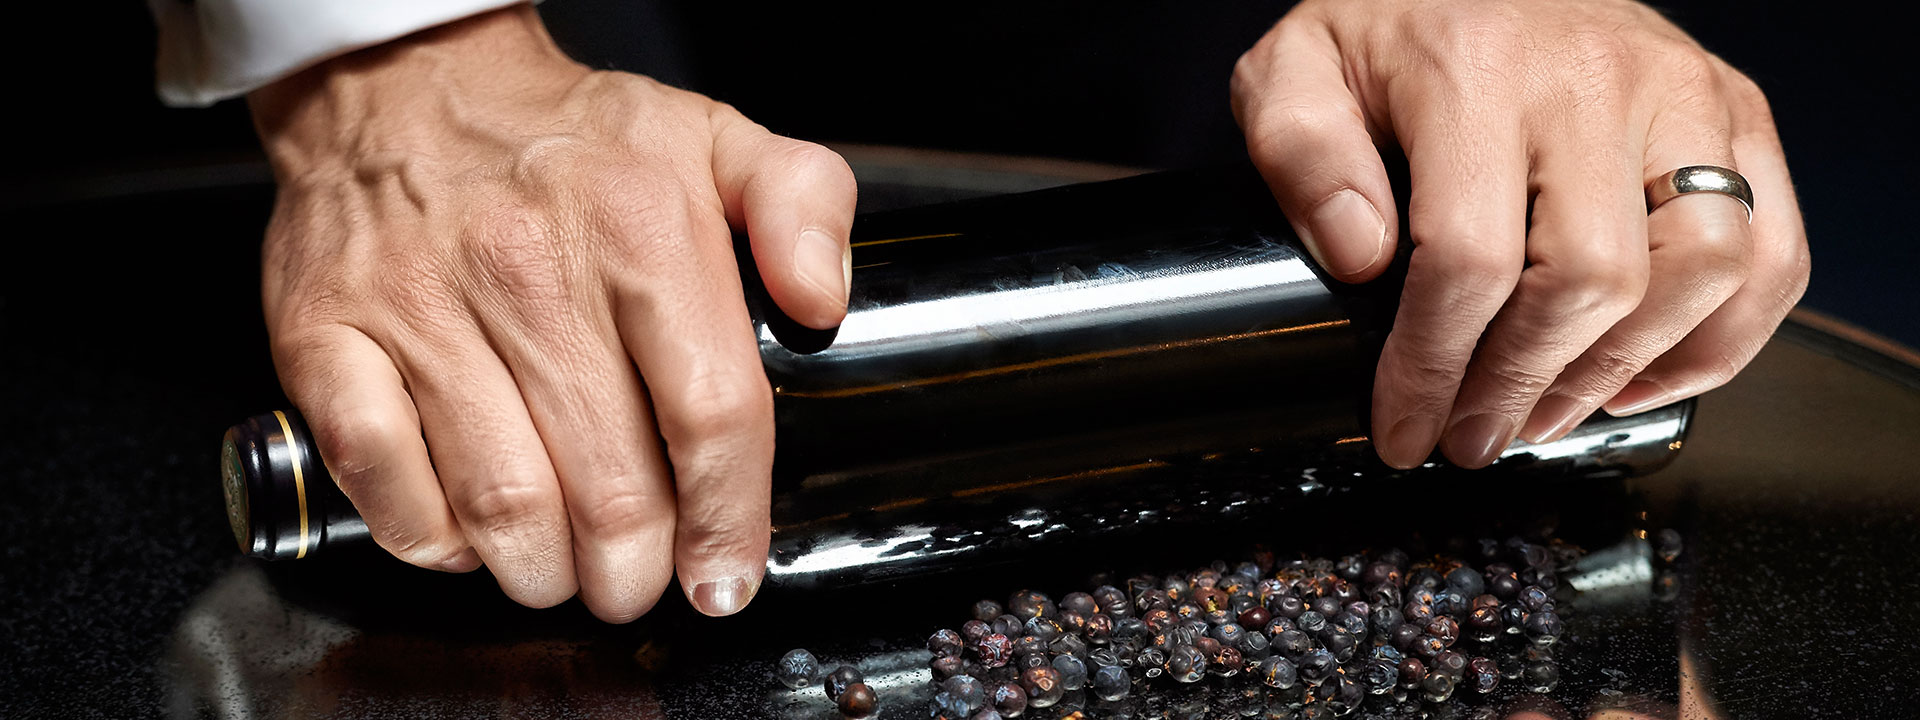 Rolling berries with a bottle of The Connaught bar gin